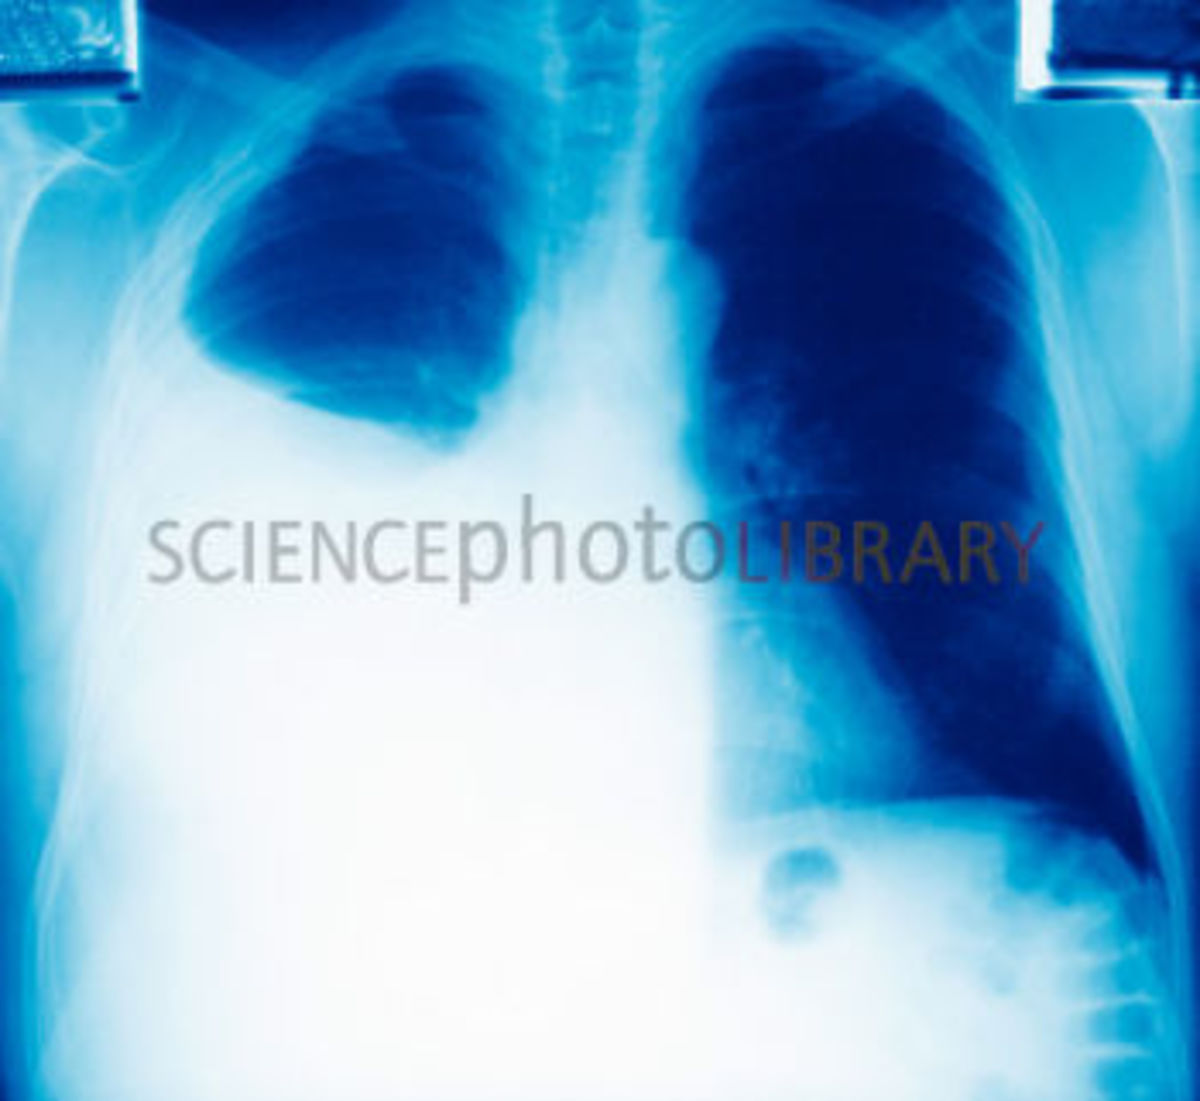 The goals are to rule out other sources of the symptoms and to find the cause of the pleurisy so that the underlying disorder can be treated.